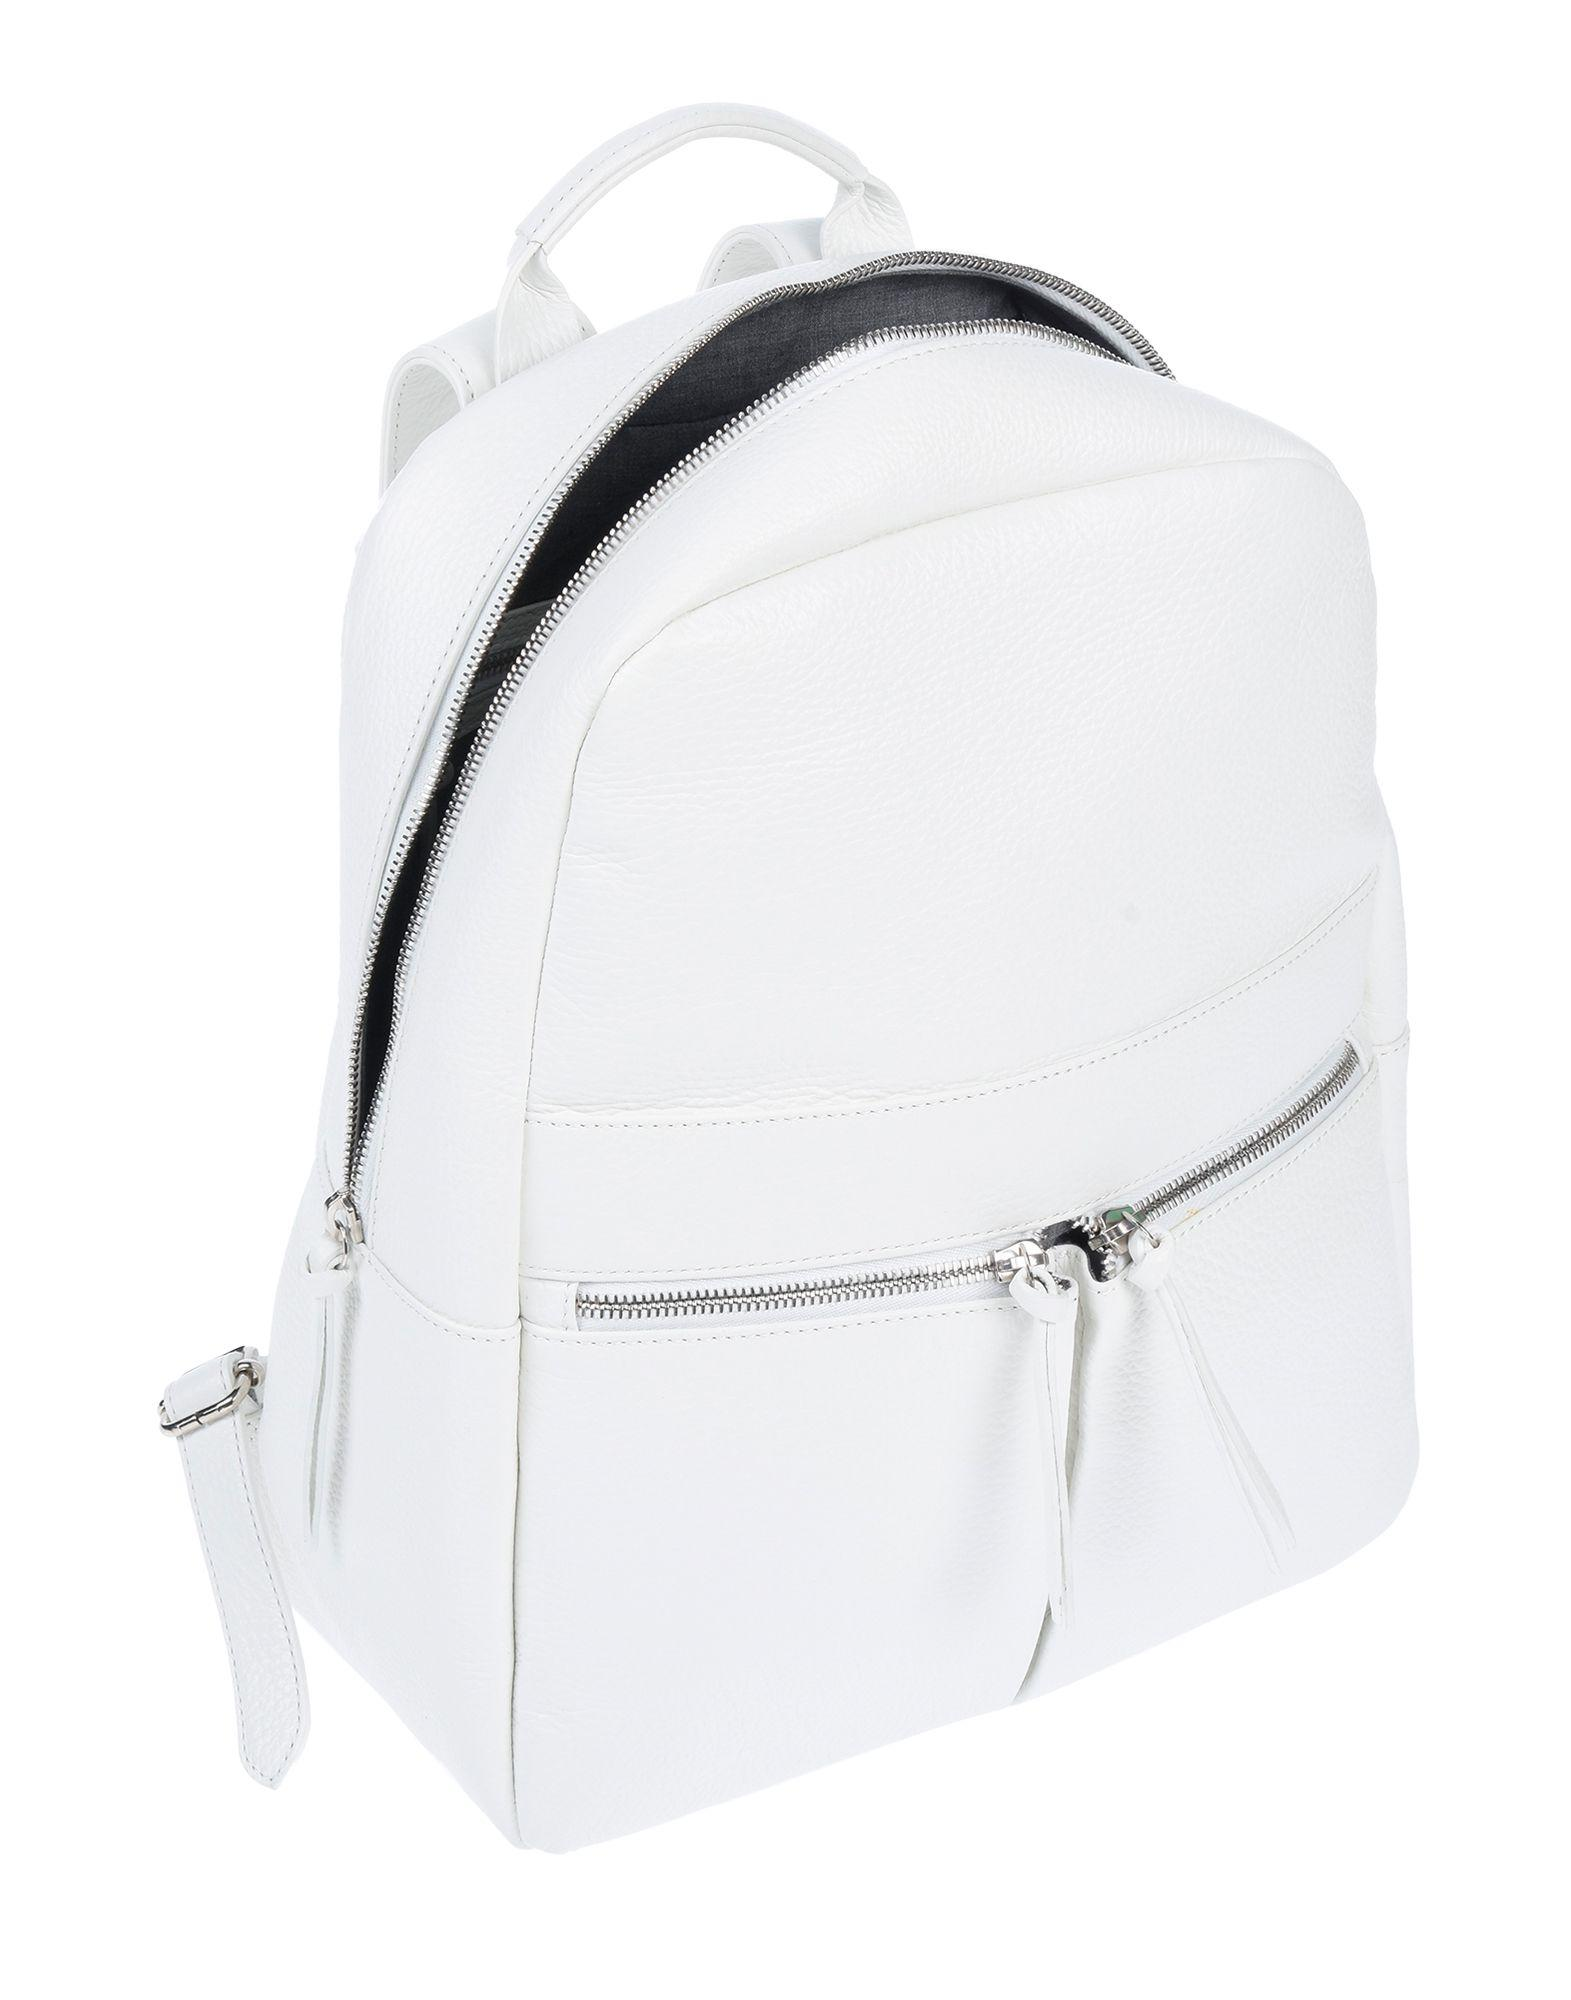 In Lyst Fanny Eleventy Backpacks amp; Packs White gY6gzqZIwx